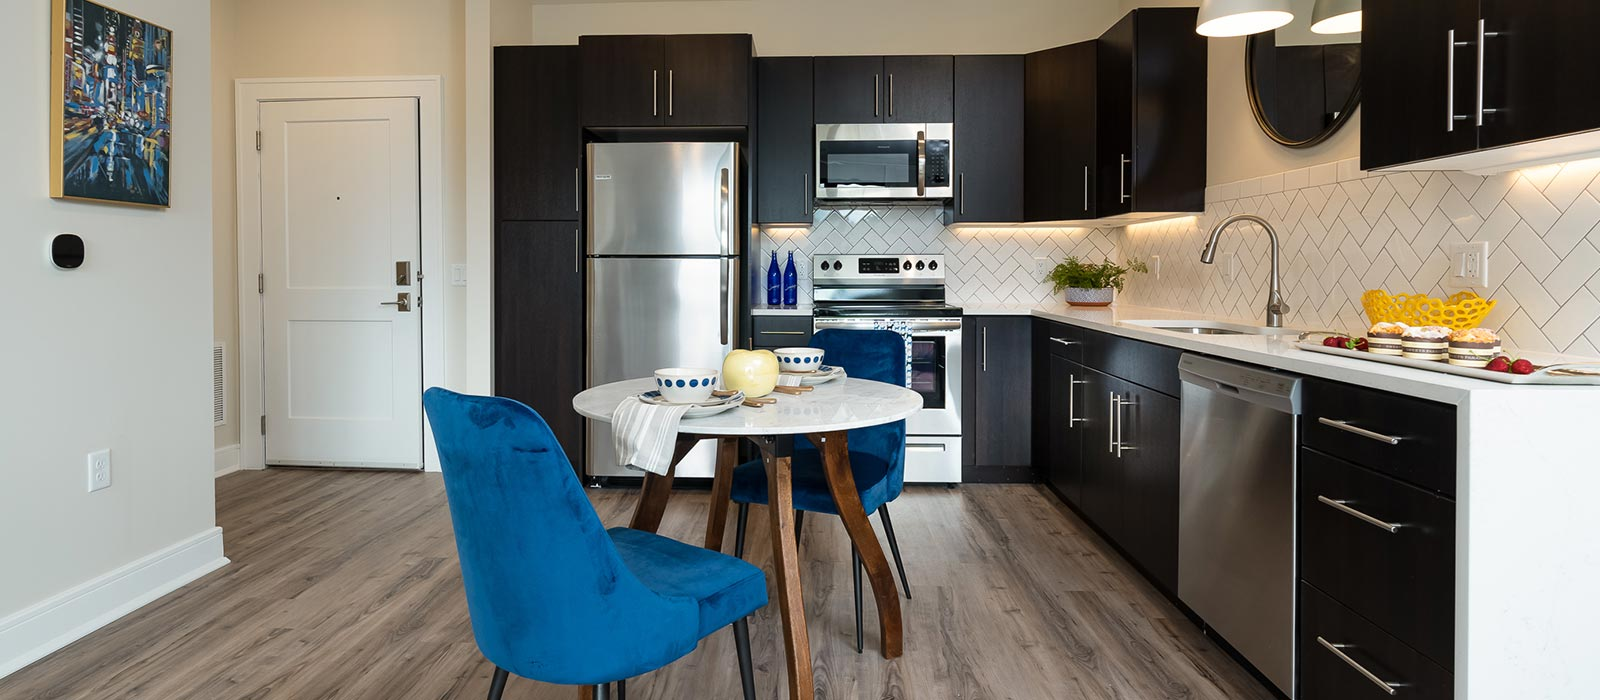 Modern kitchen with dark wood cabinets and modern table and chairs